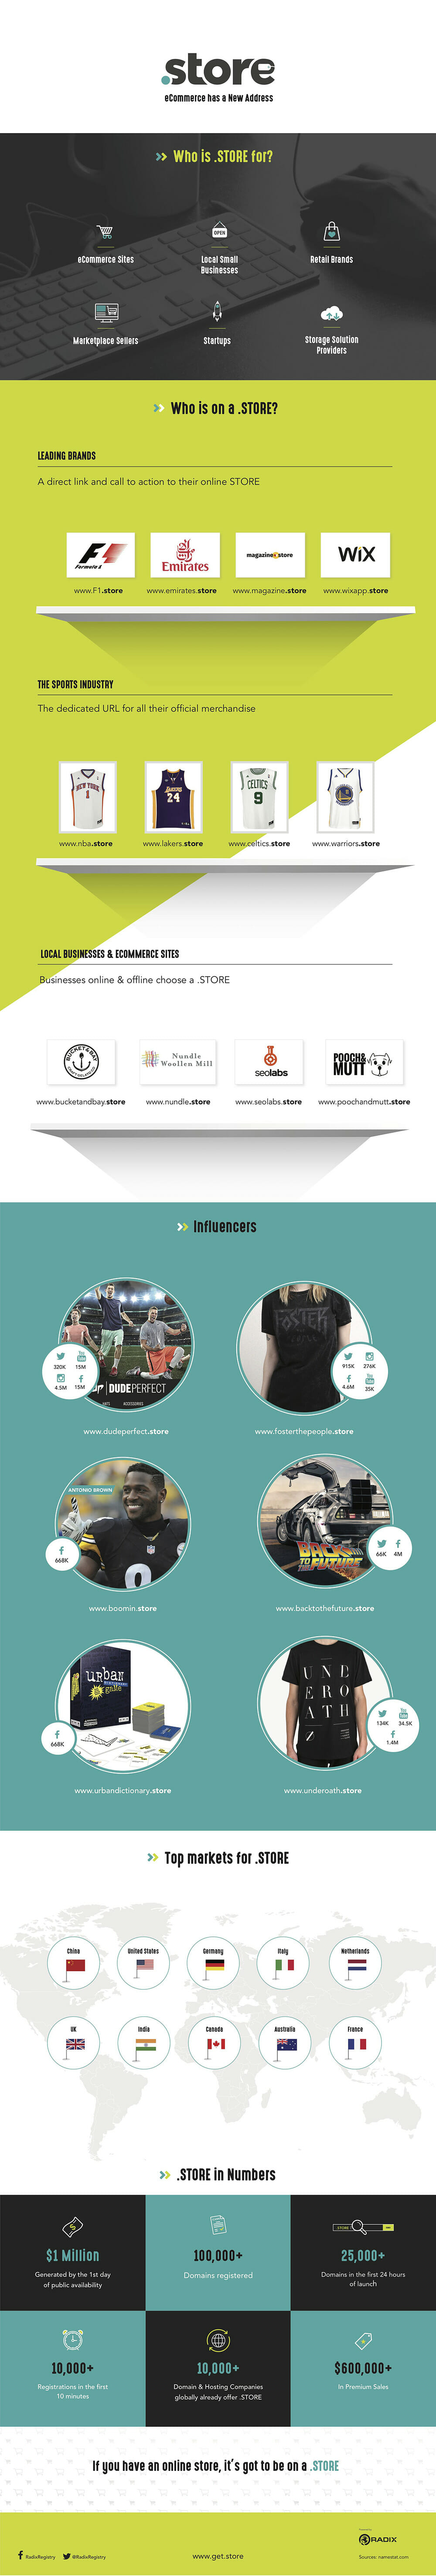 .STORE infographic